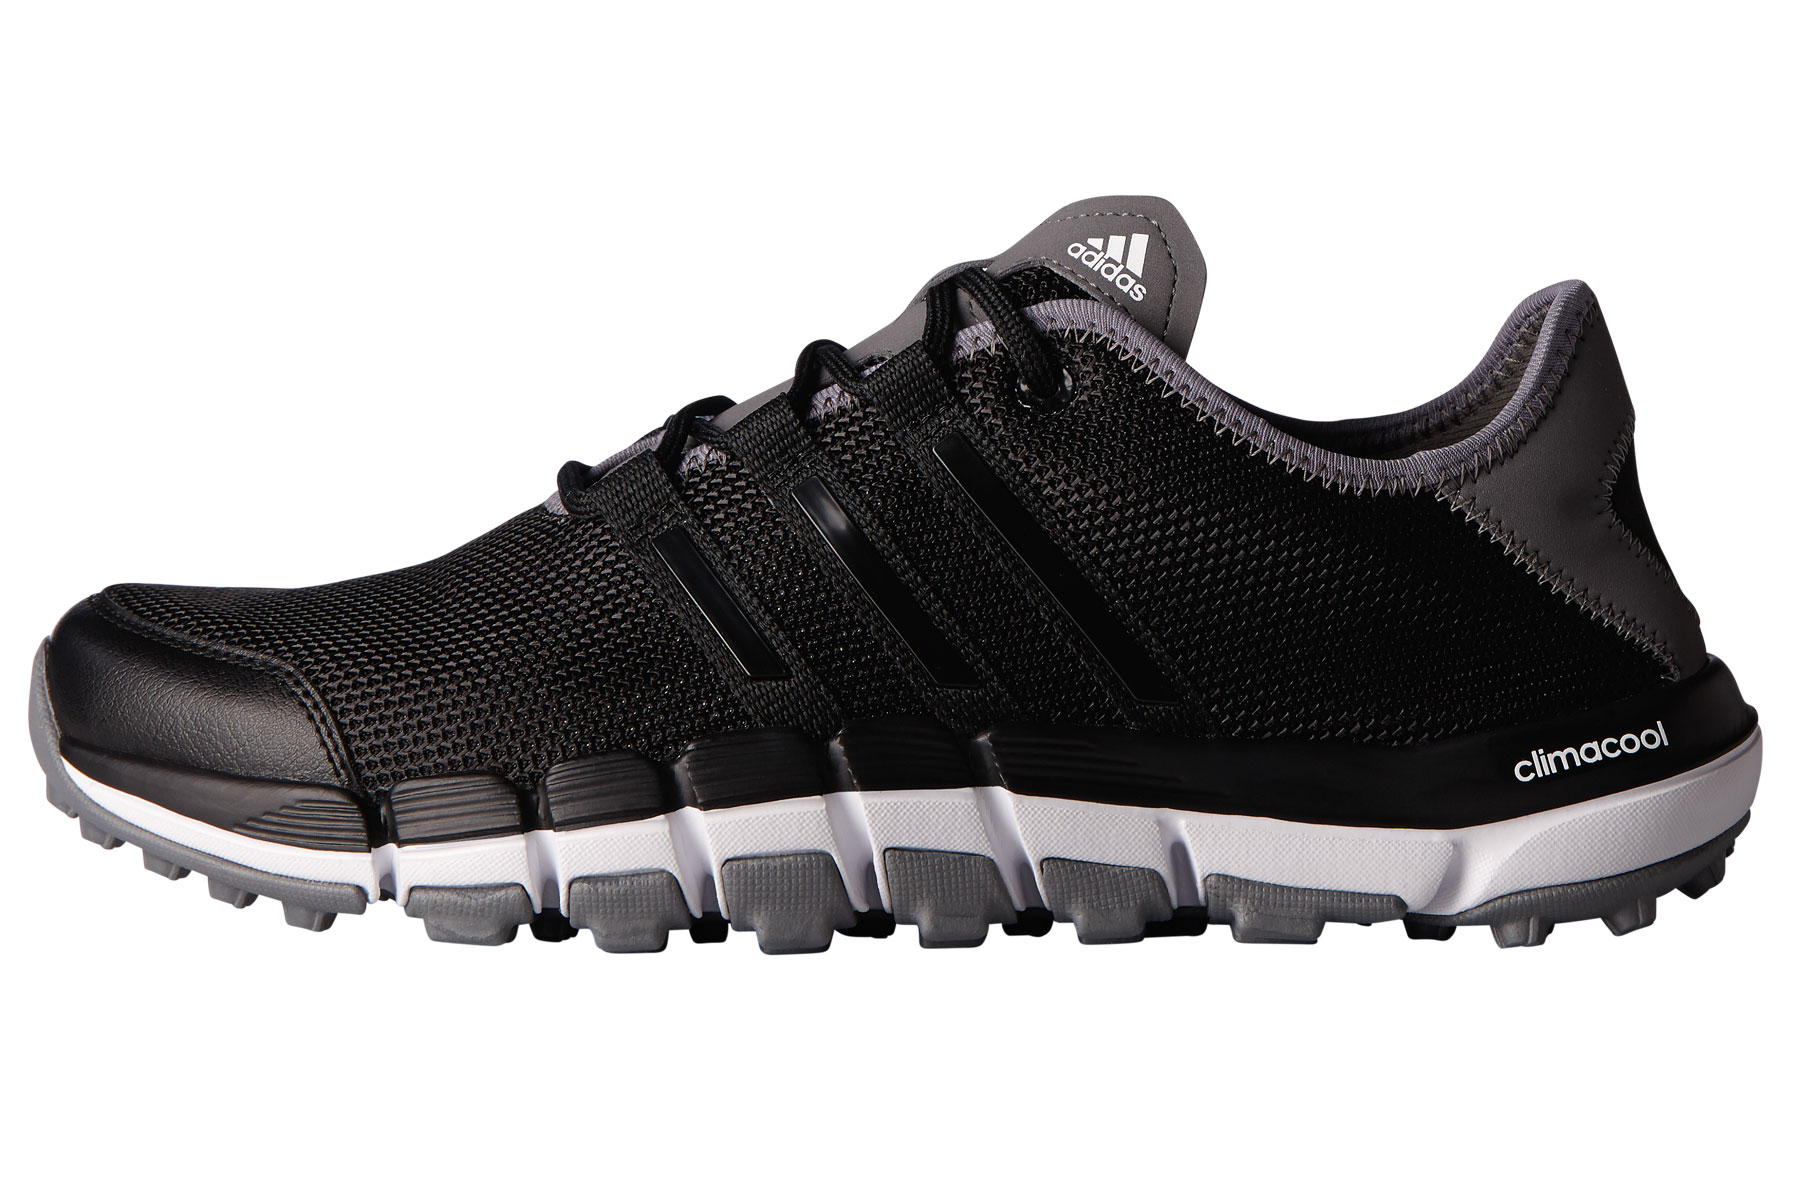 Adidas Golf Climacool Street Shoes